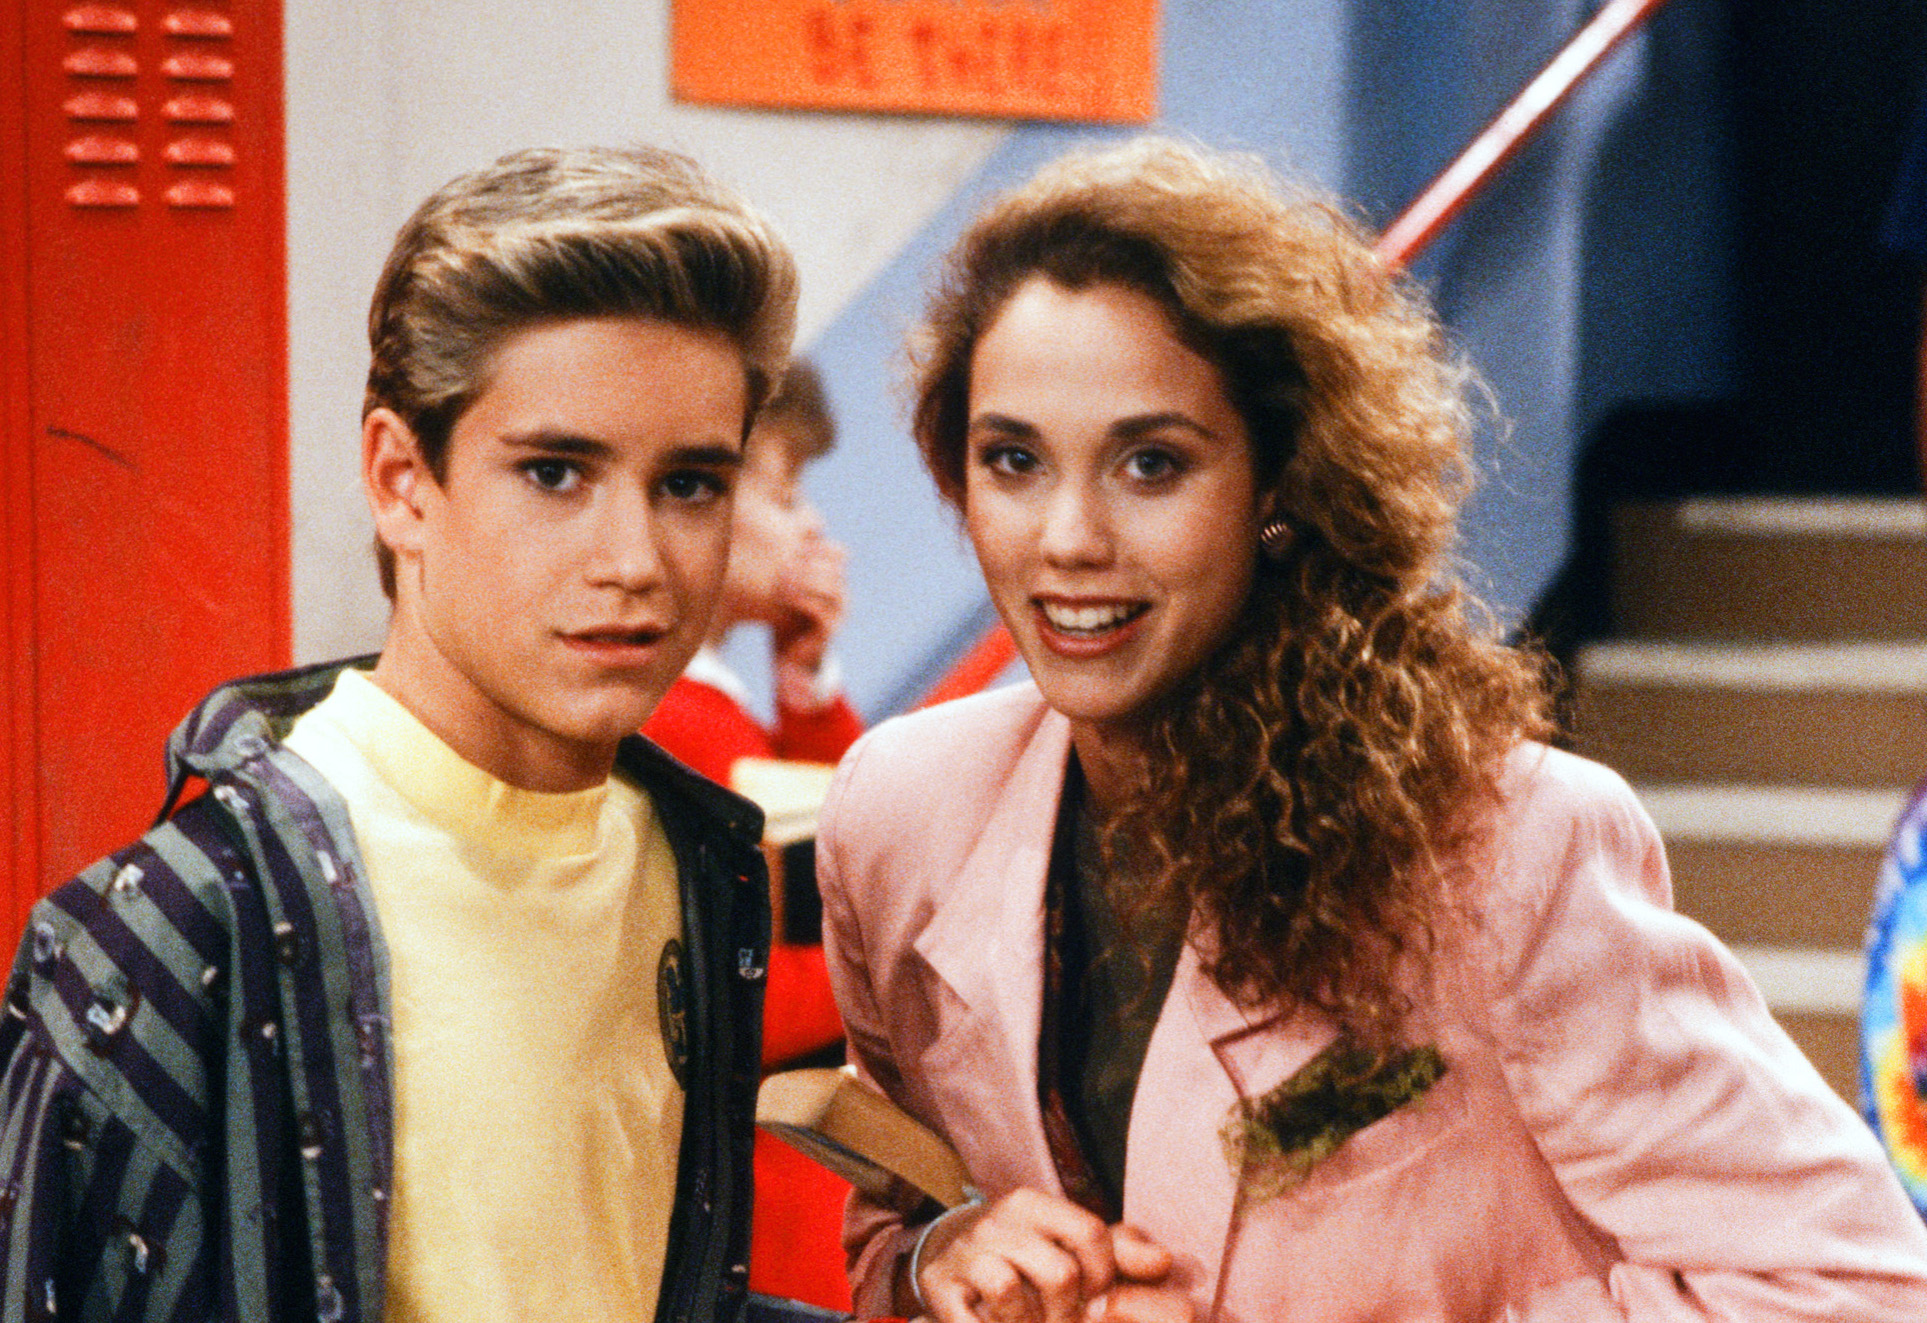 """We just learned something BIG about that ~iconic~ Jessie episode of """"Saved by the Bell"""""""